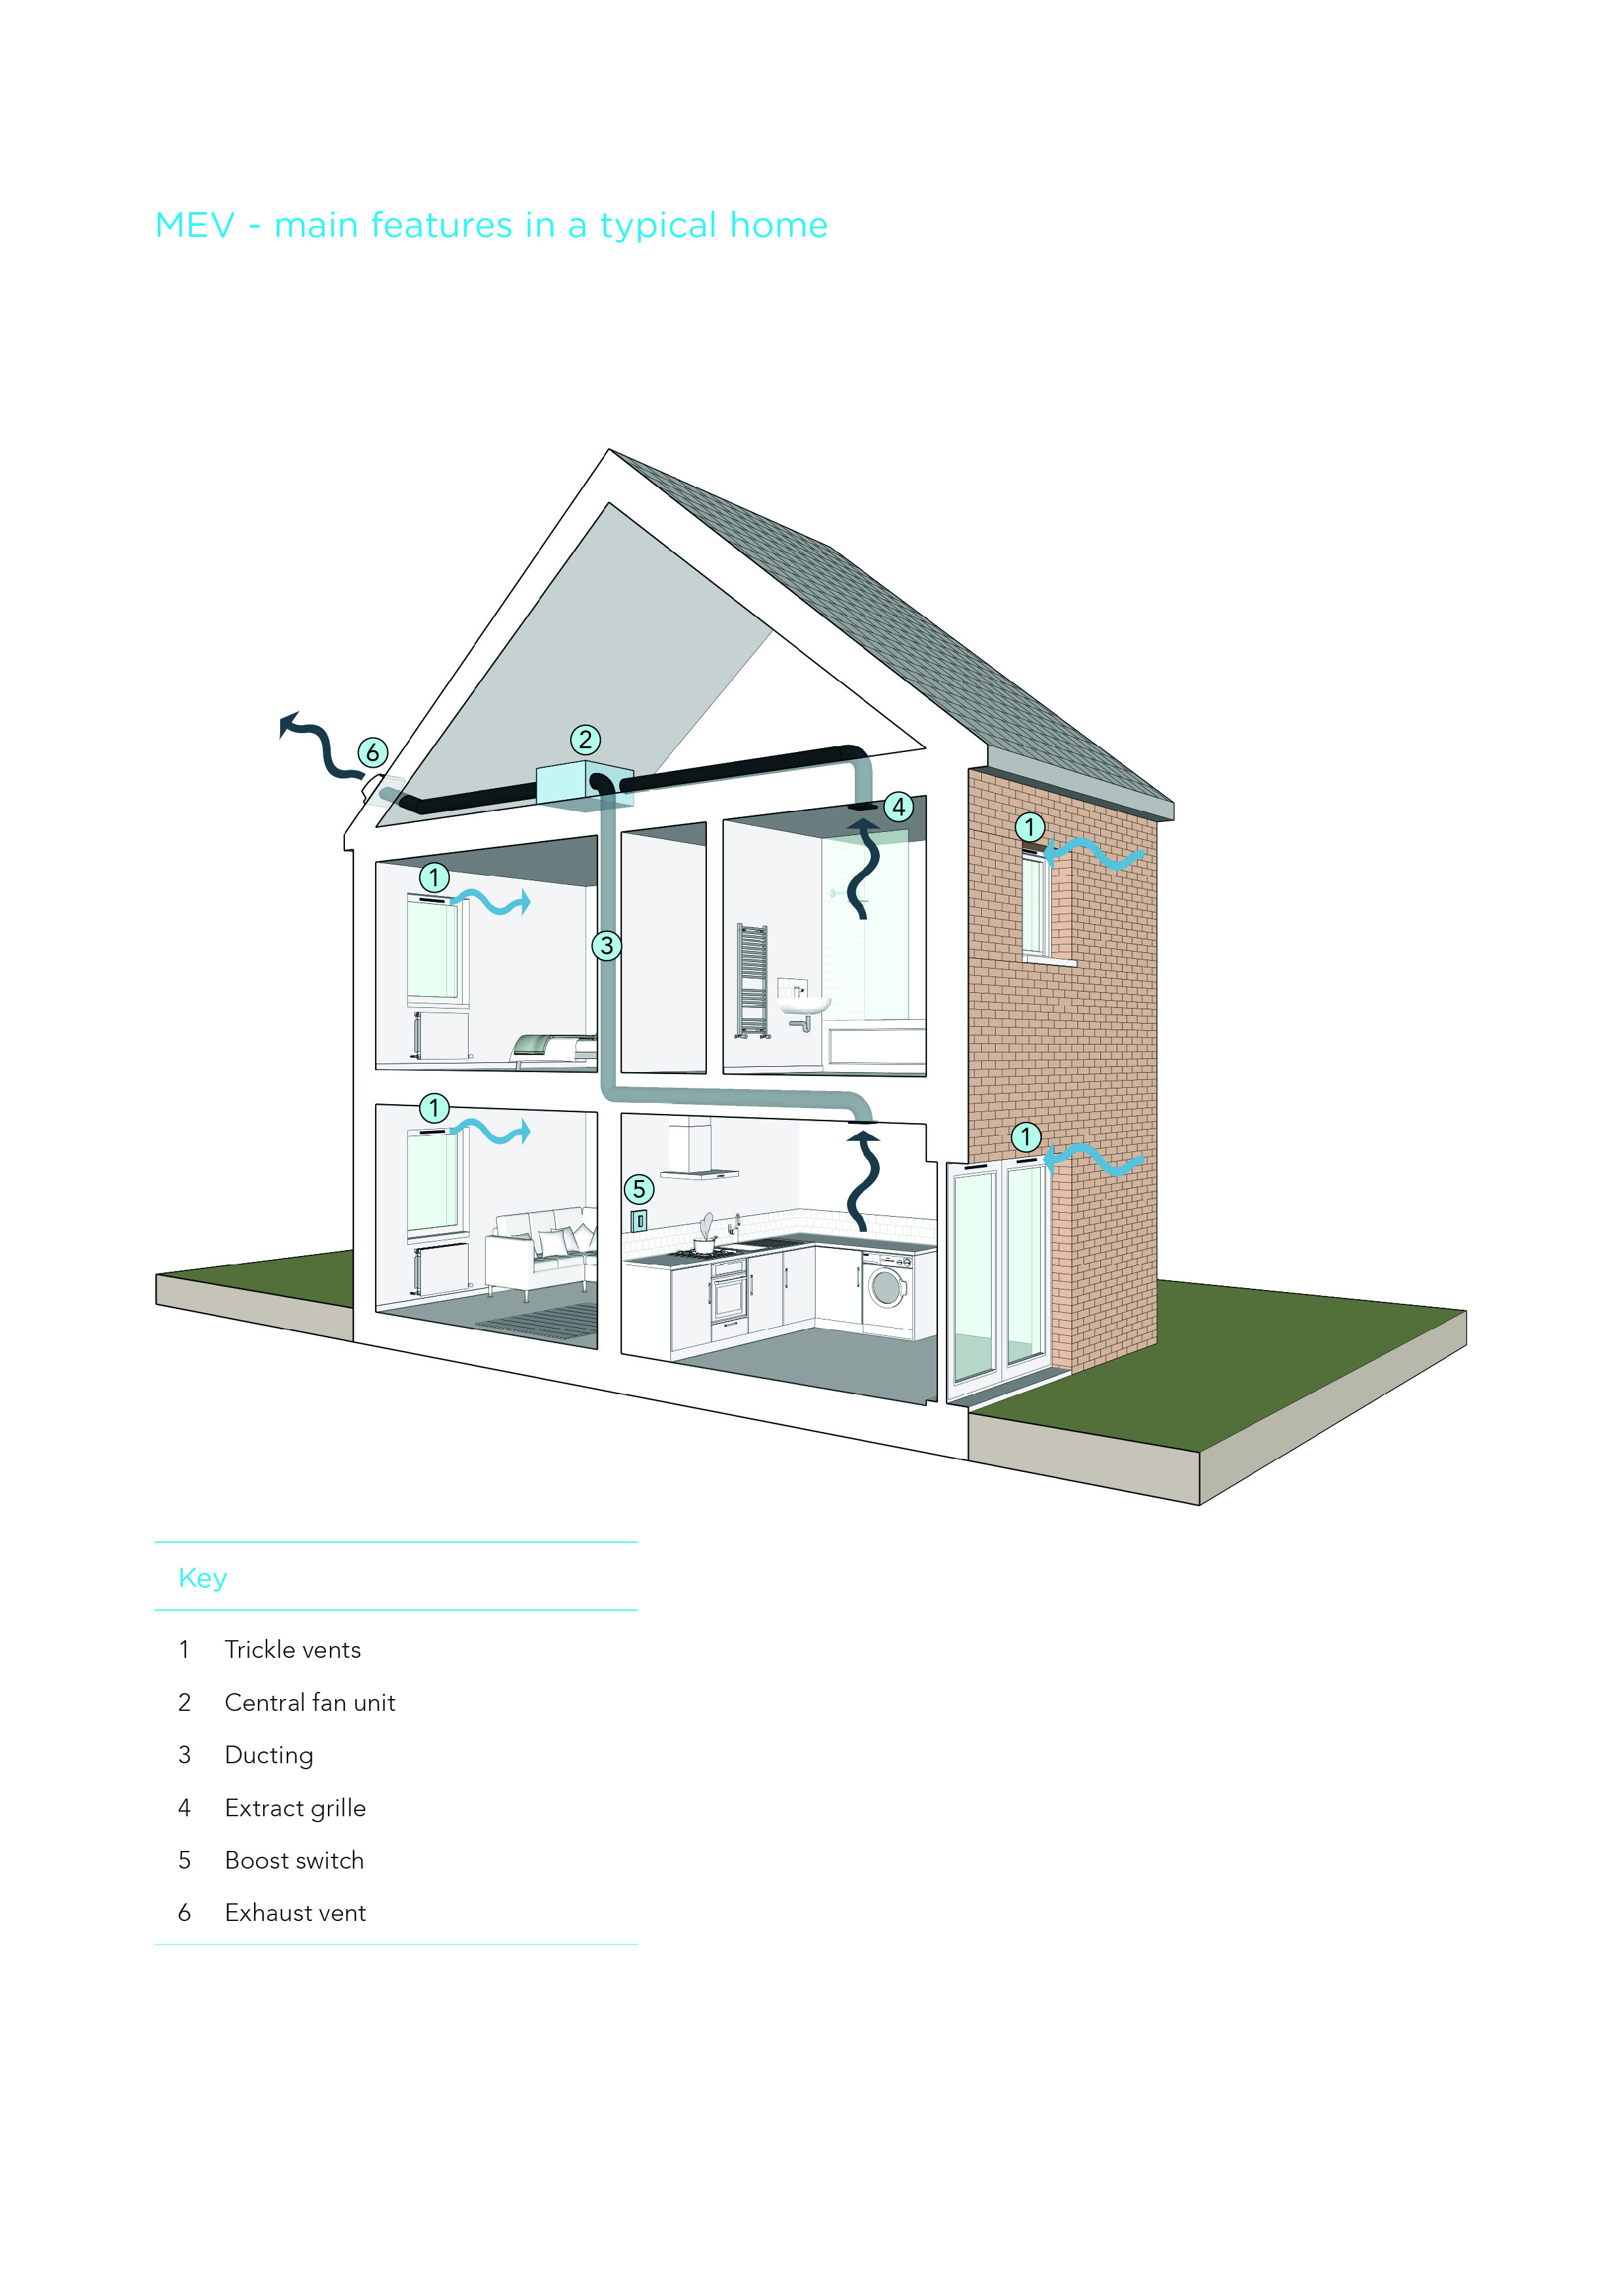 home comforts: guidance on using ventilation, heating and renewable